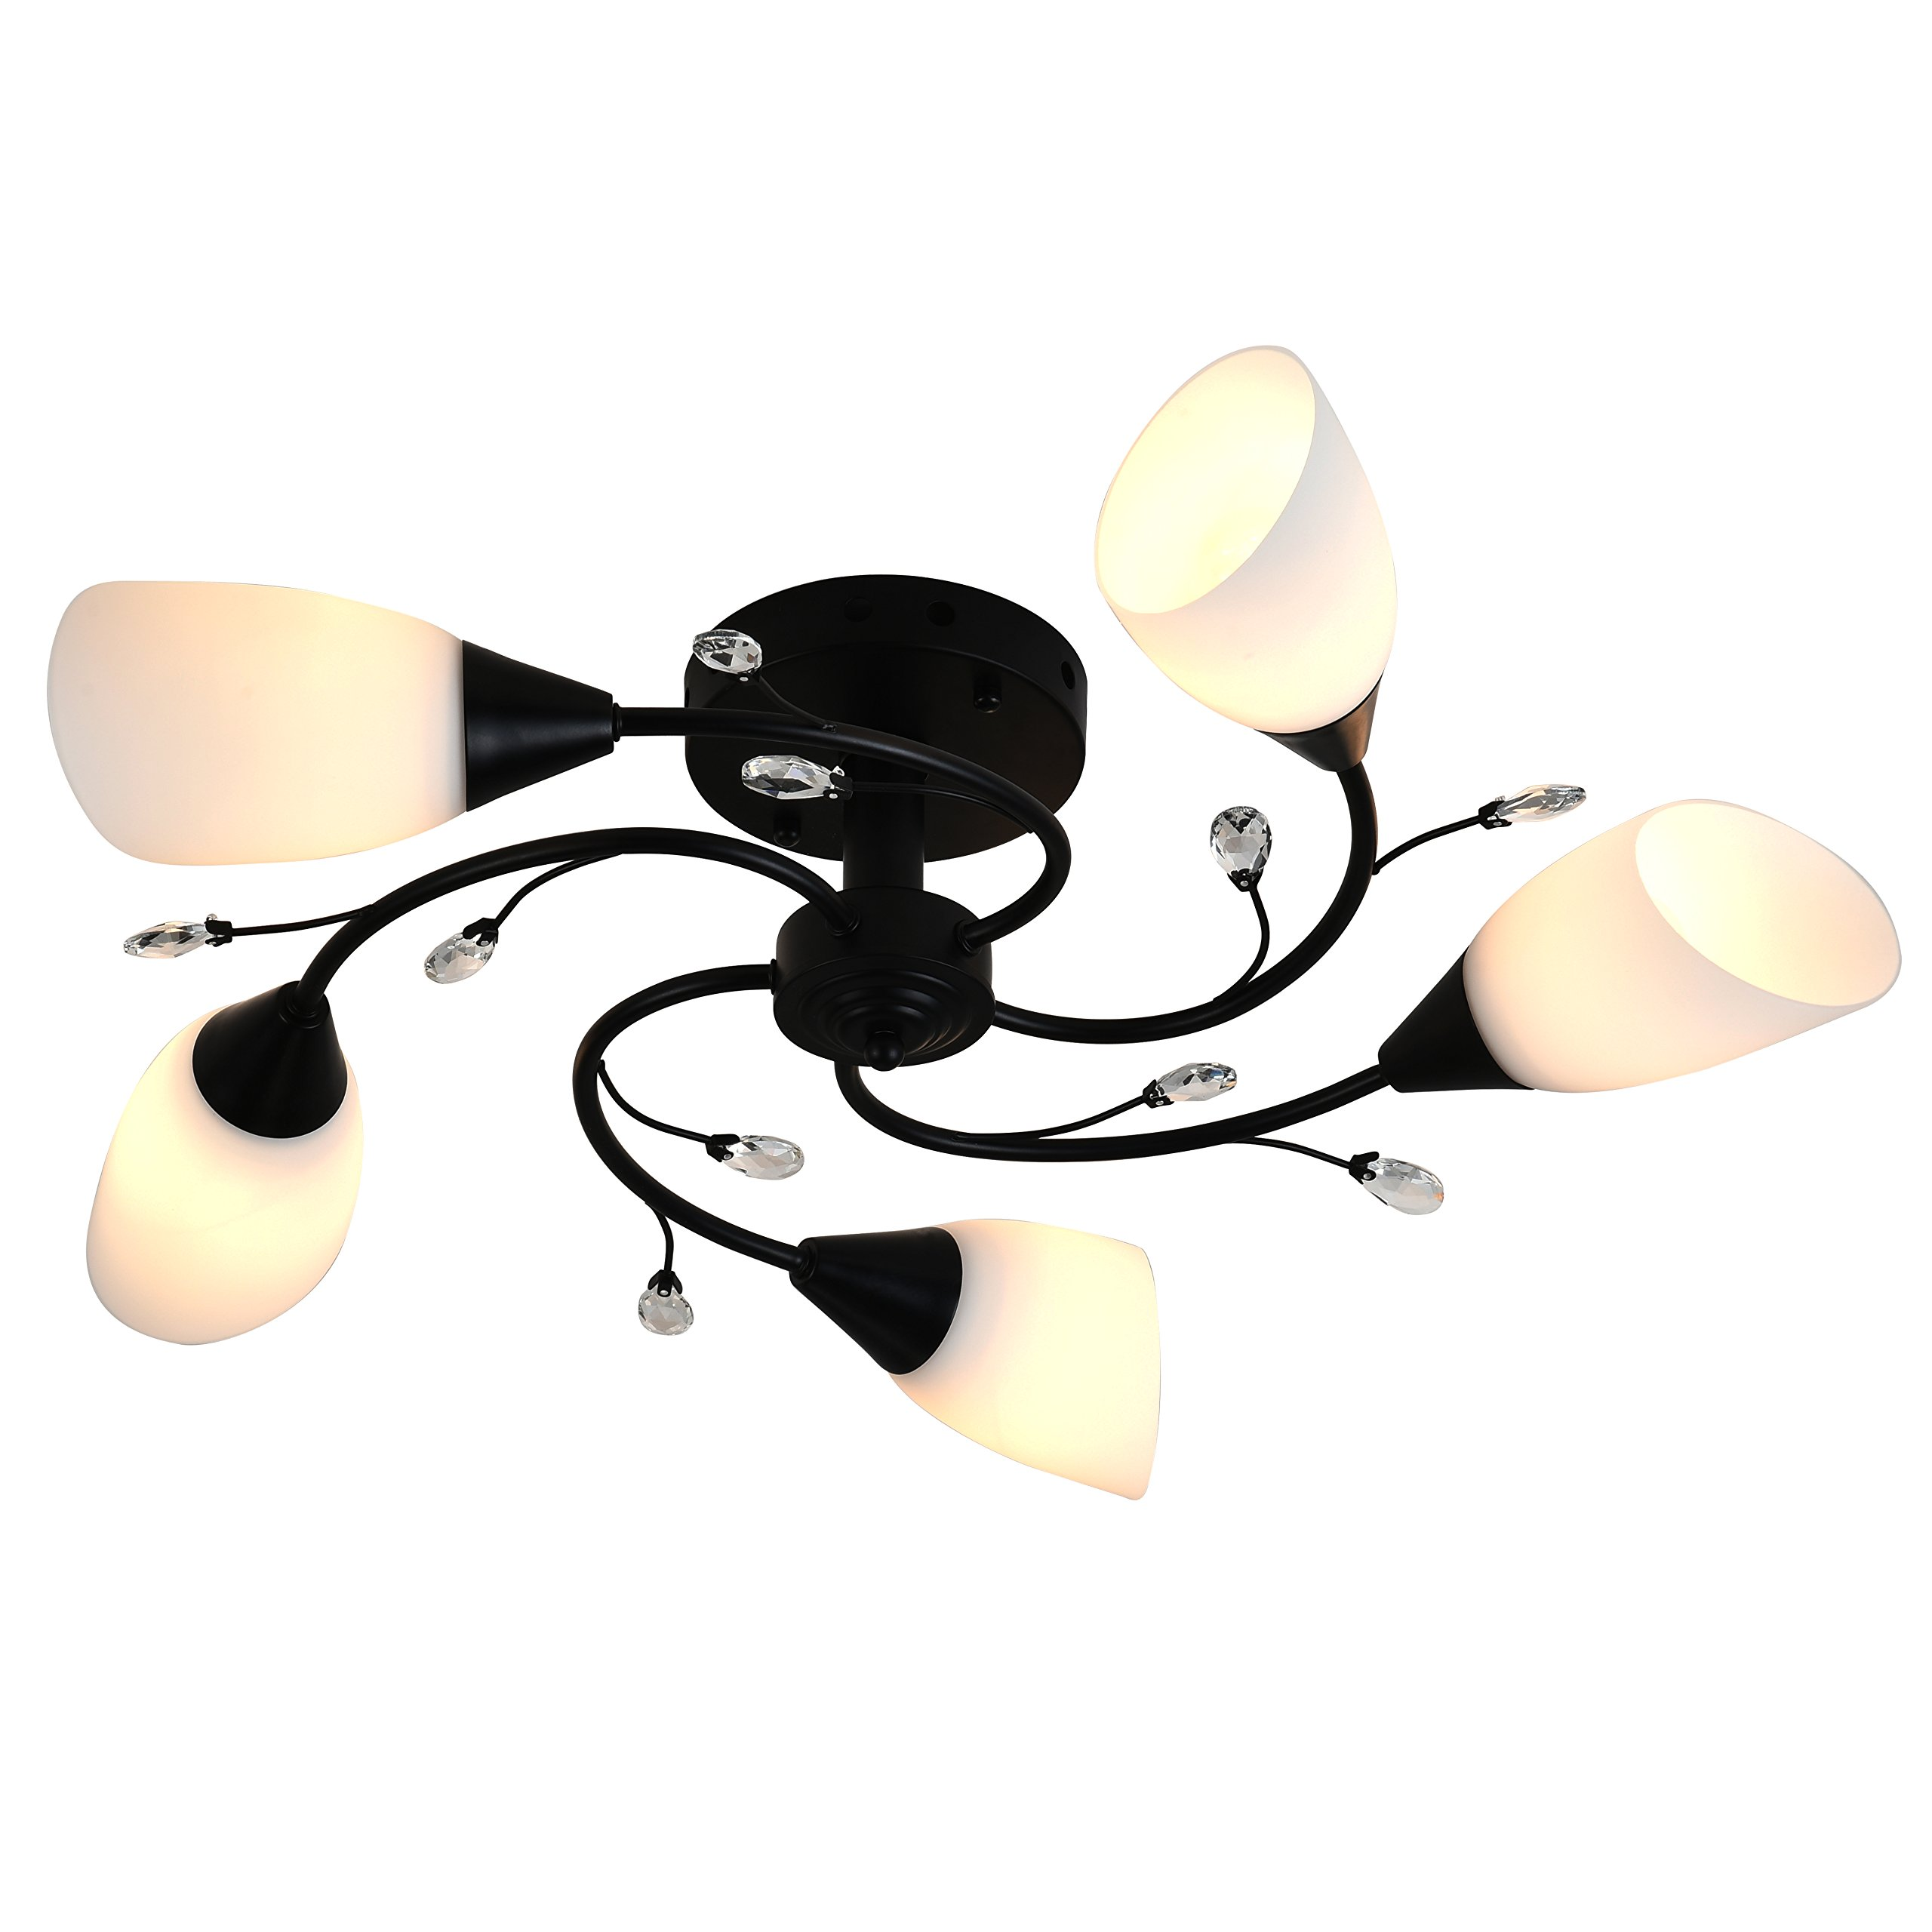 Semi Flush Mount Ceiling Light Fixture - FINXIN FXCL22 Modern Black Painting Pendant Light for Bedroom,Hallway,Kitchen and Dining Room